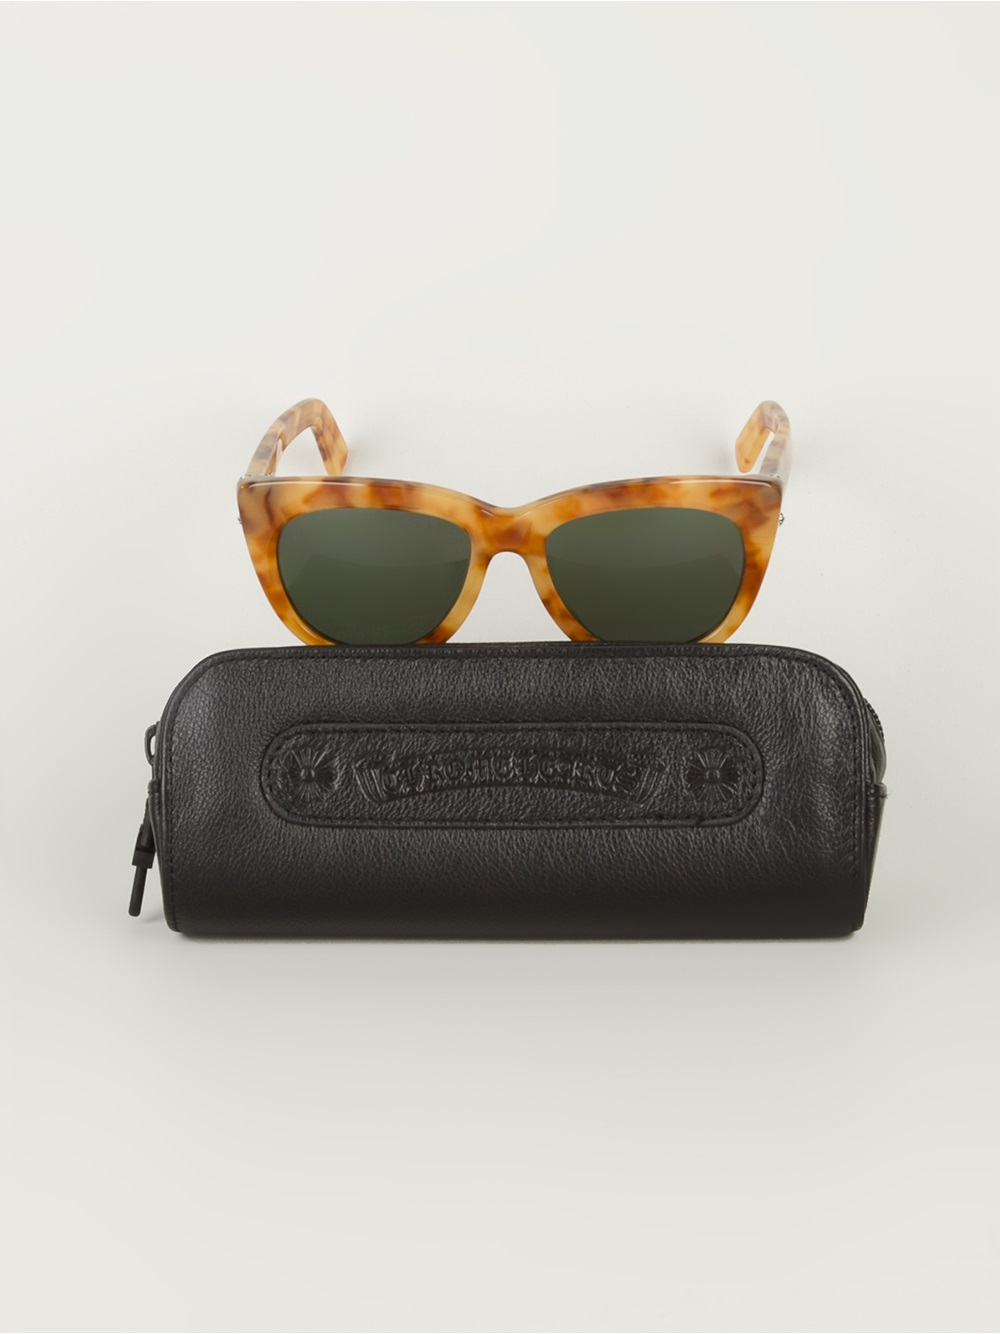 Chrome Hearts 'lunchfucks' Sunglasses in Brown